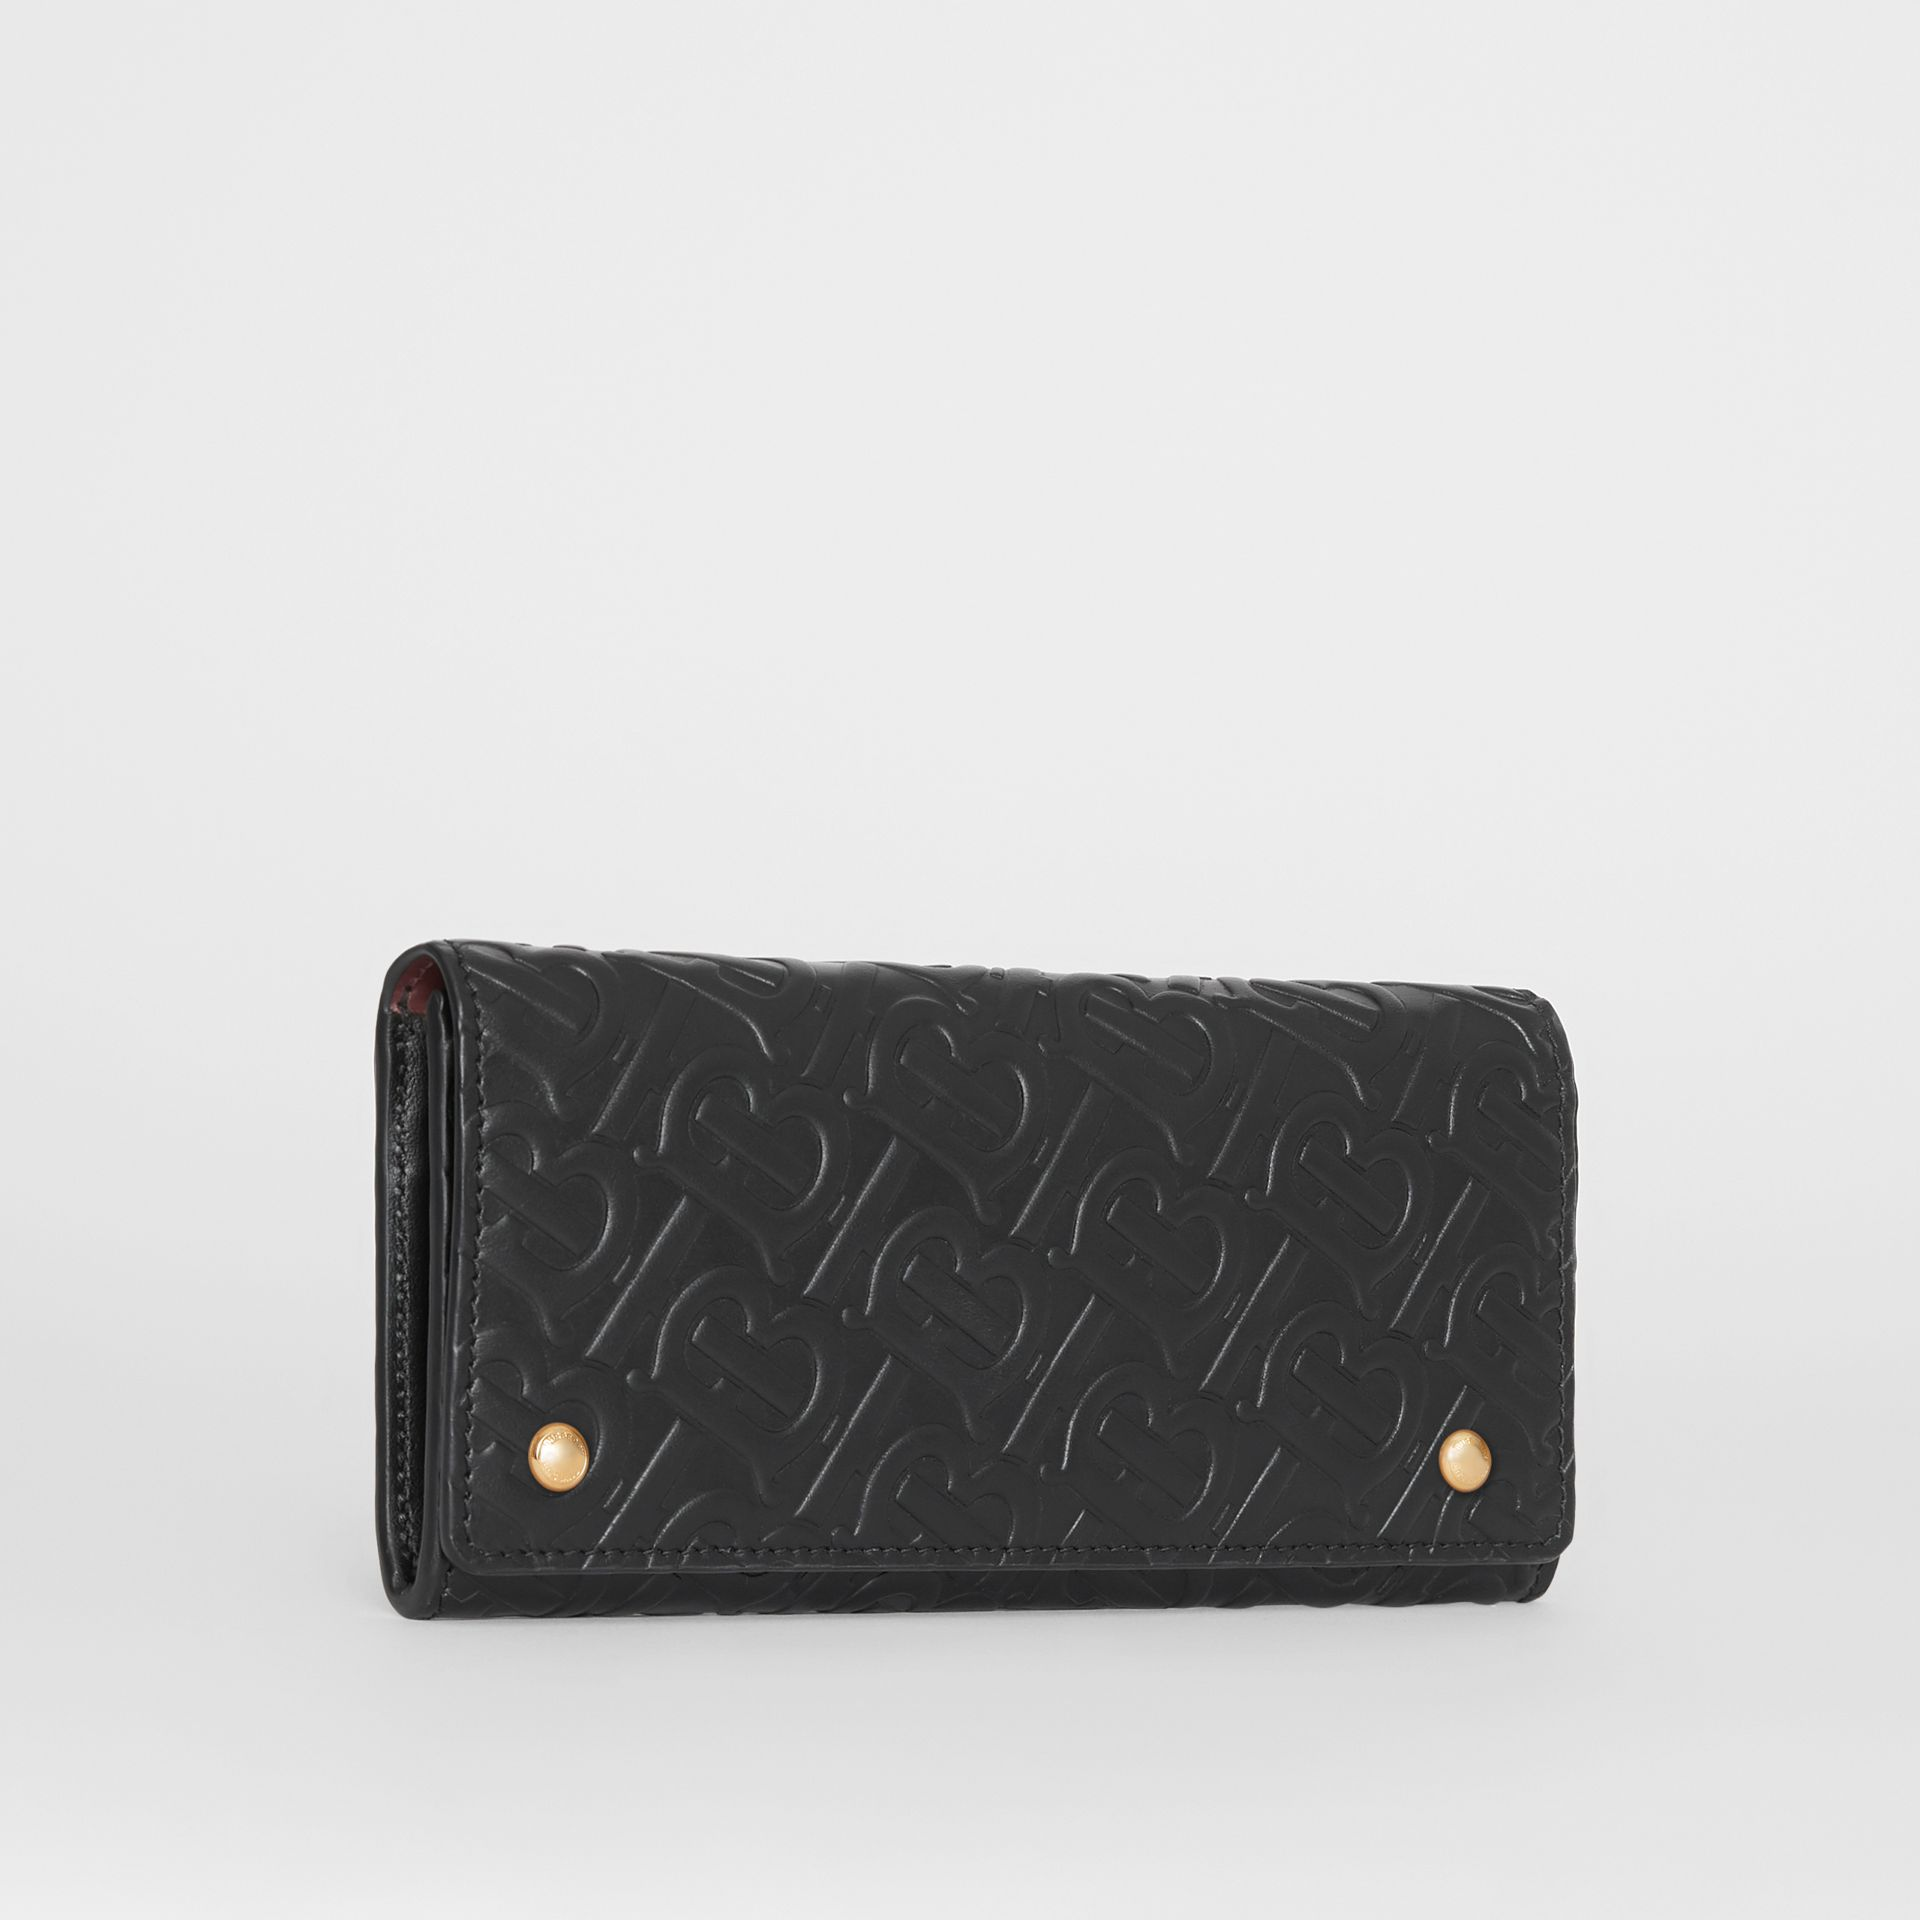 Monogram Leather Continental Wallet in Black - Women | Burberry - gallery image 3